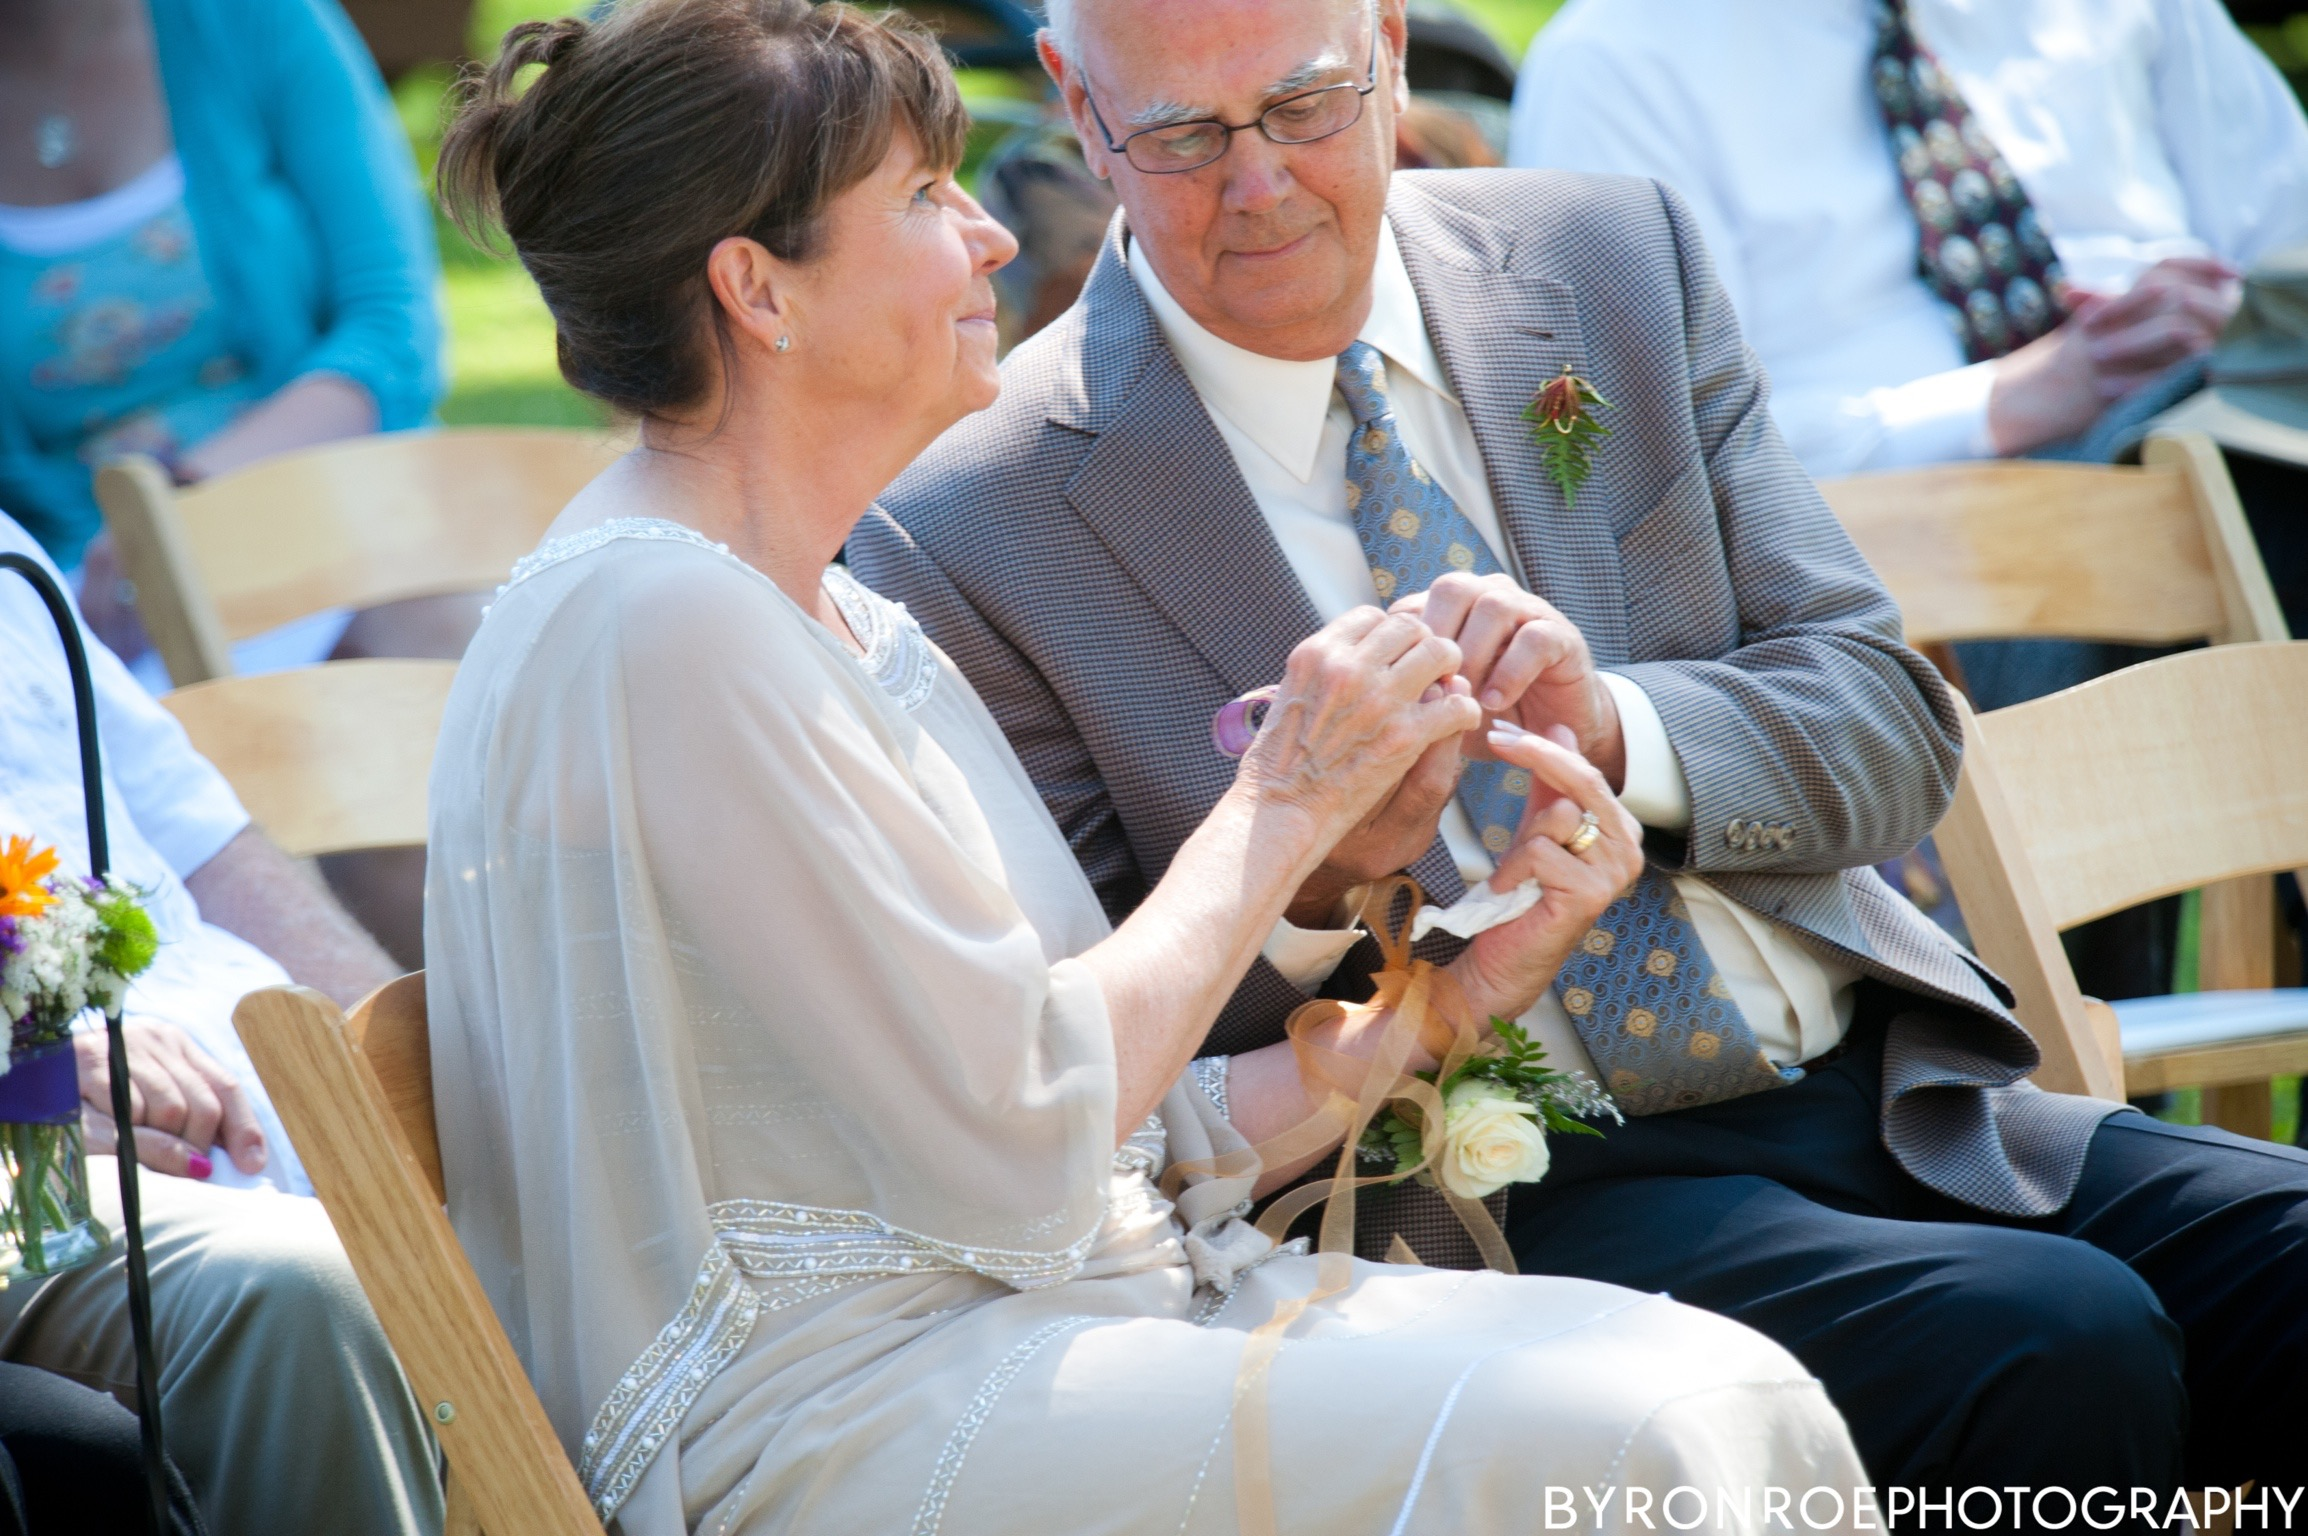 byronroephotography-houseonmetolius-caseydamon-wedding2012-high-62.jpg